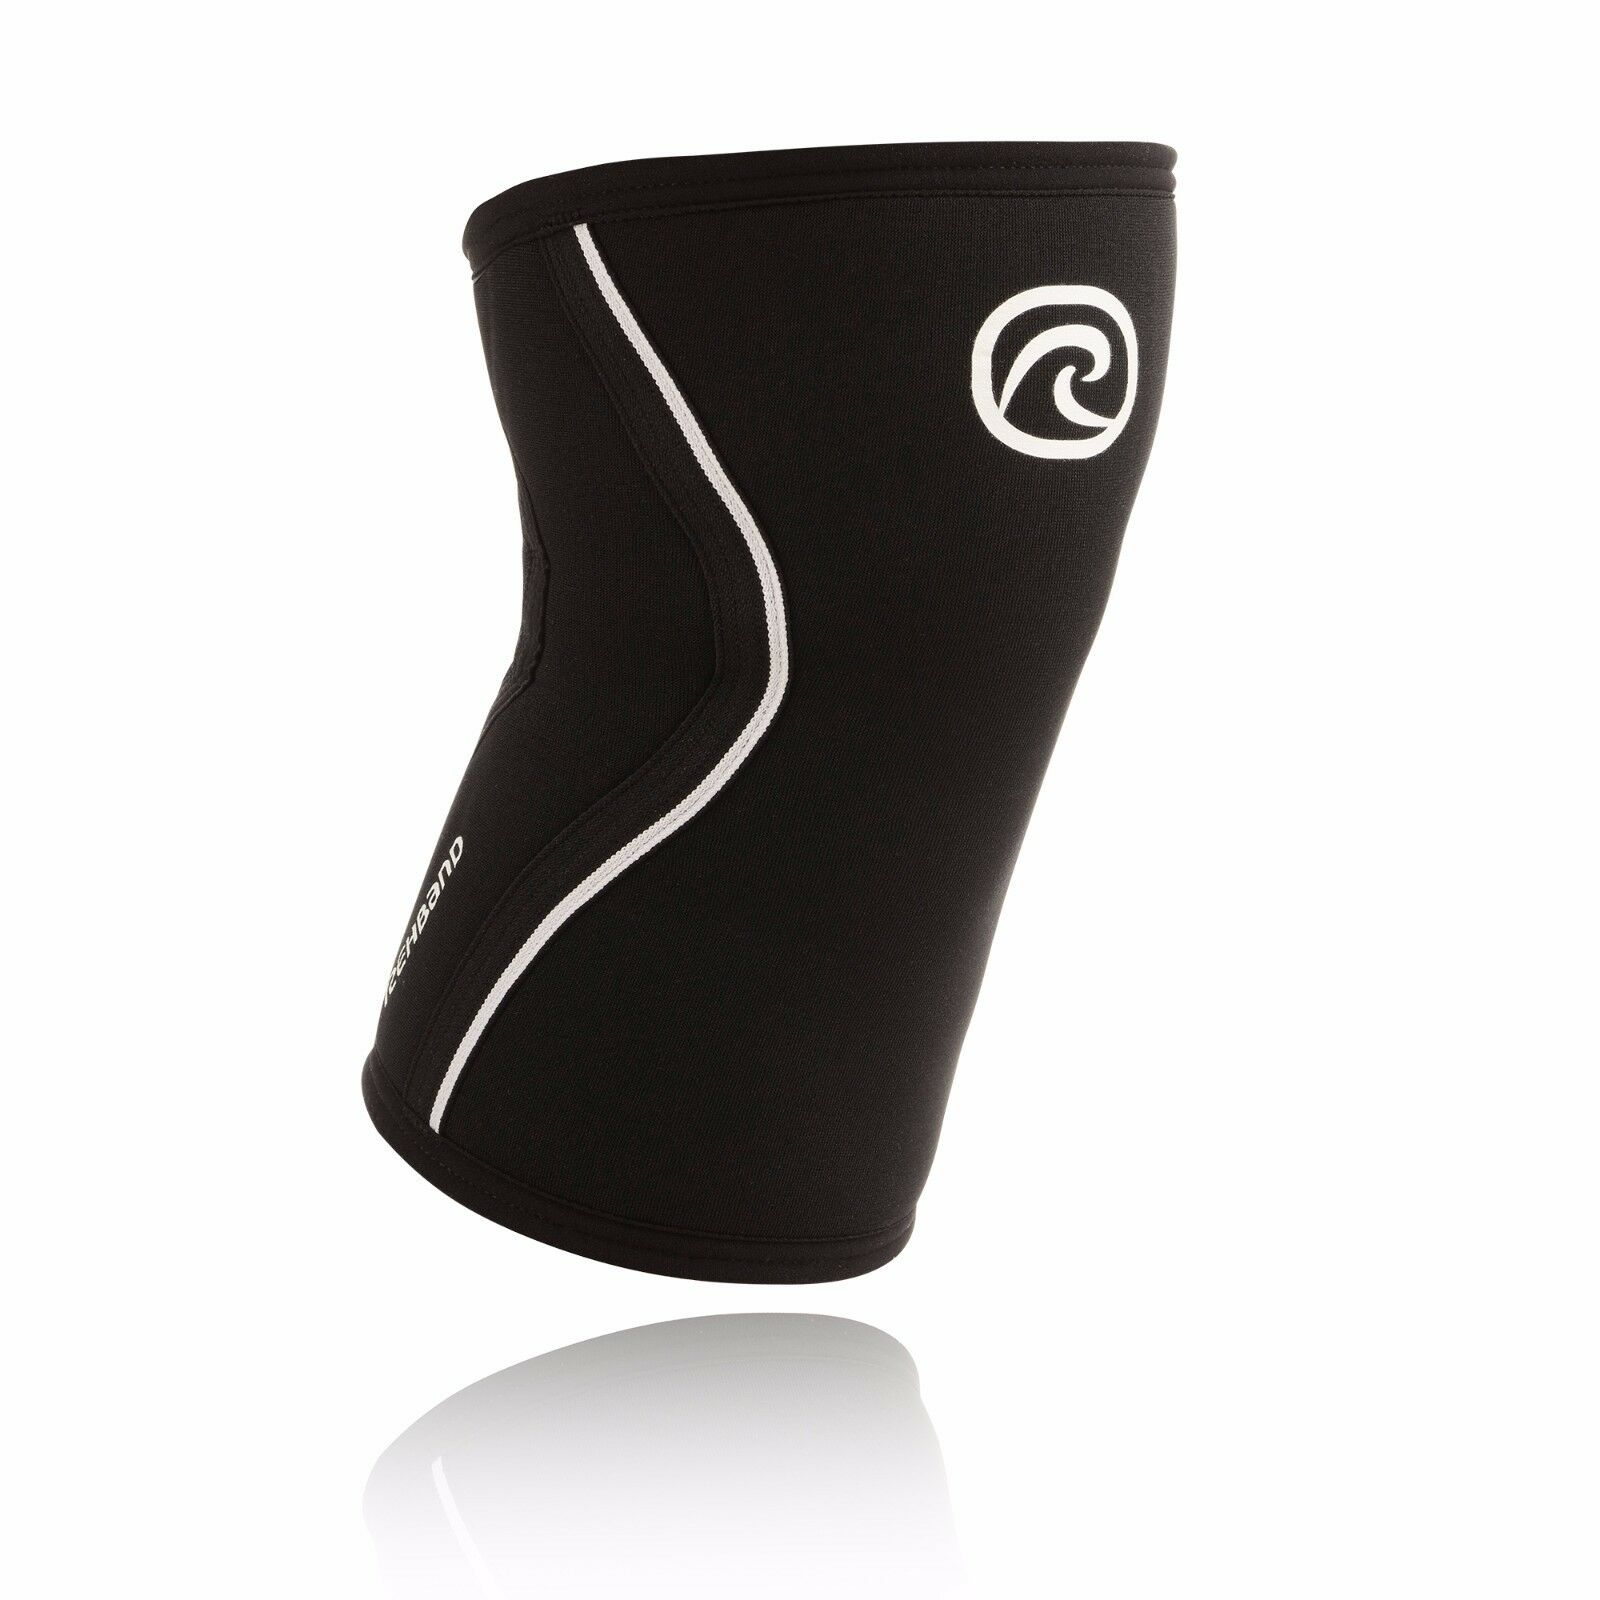 Rehband 105406 Rx Knee Sleeve - Black, 7mm